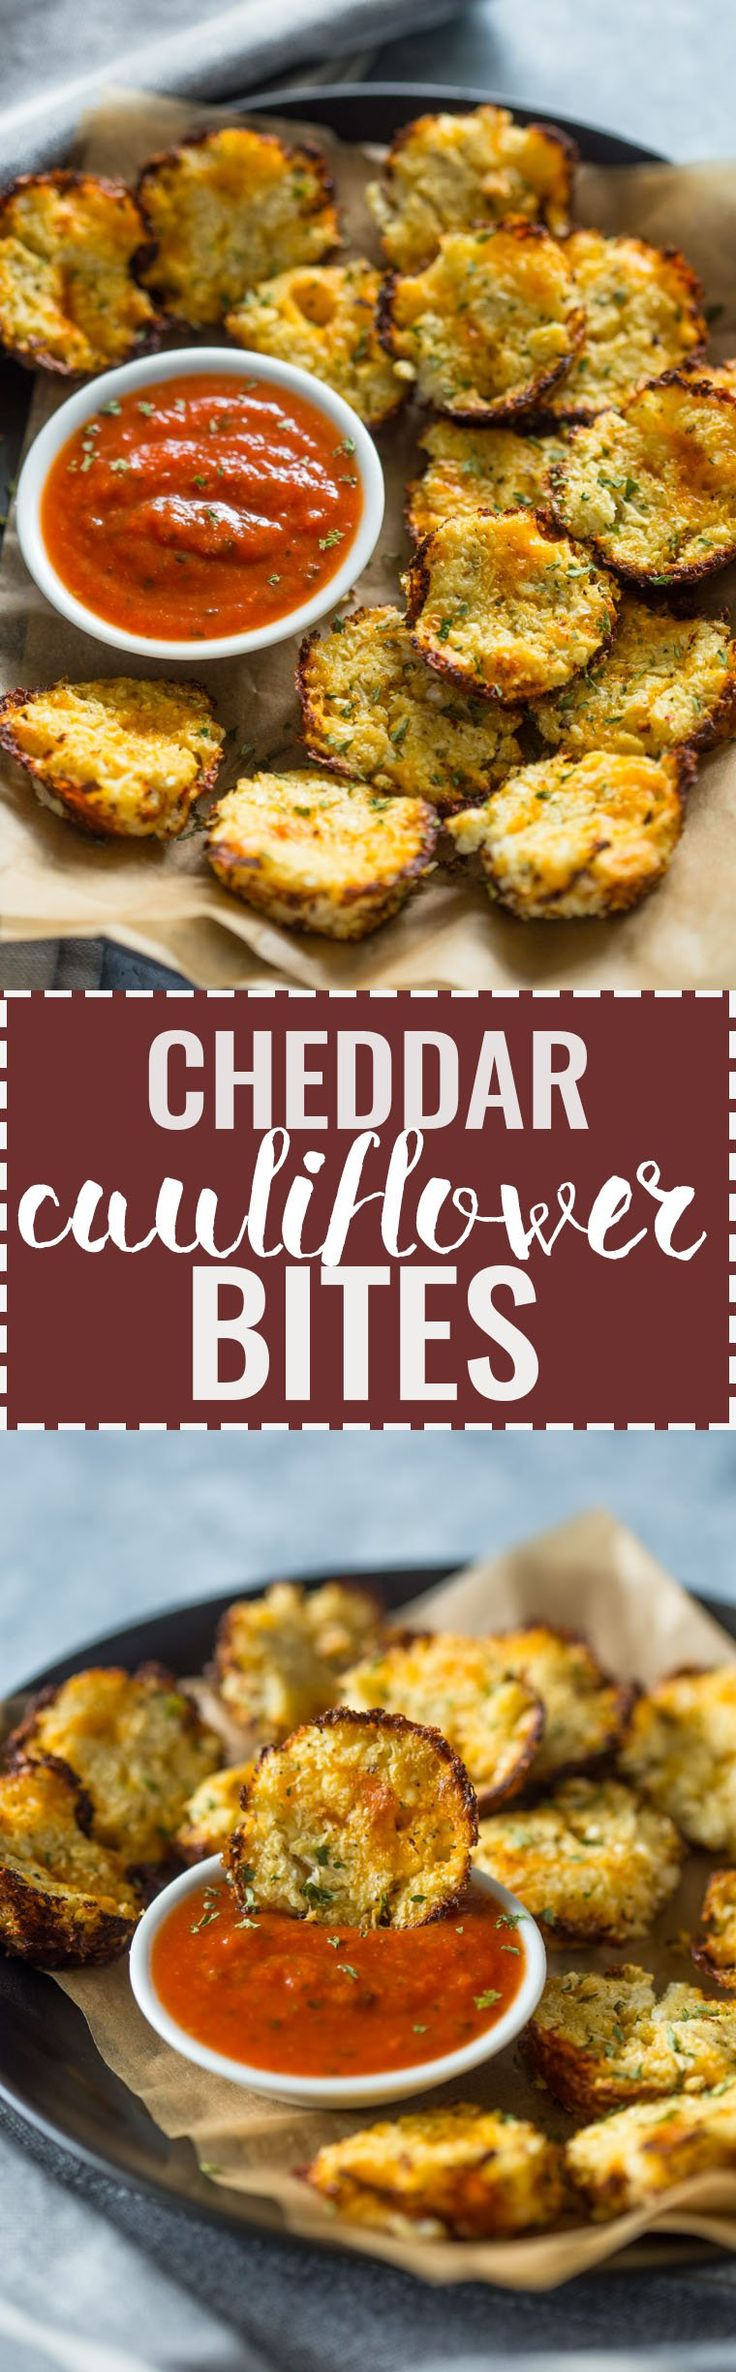 3 Ingredient Baked Cheddar Cauliflower Bites | Gimme Delicious